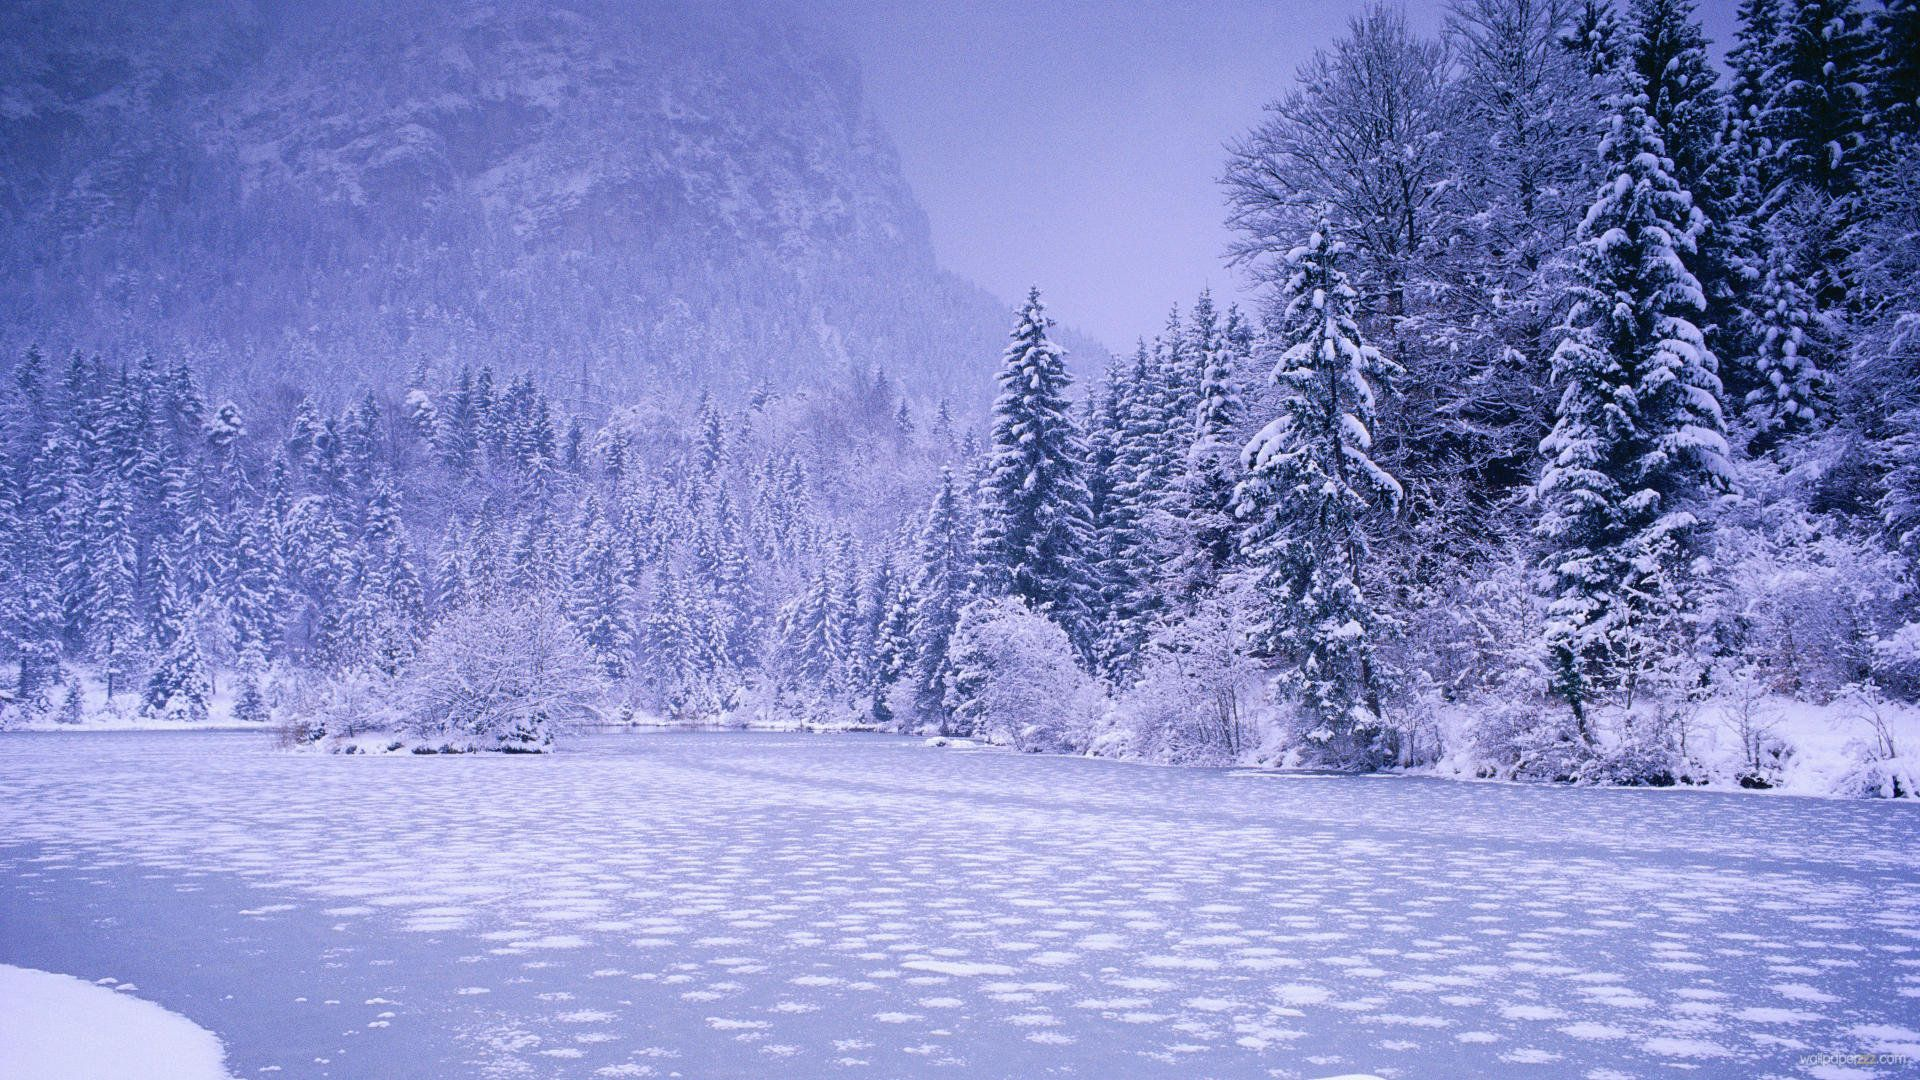 anime winter scenery wallpaper hd 1080p 12 hd wallpapers mis 1